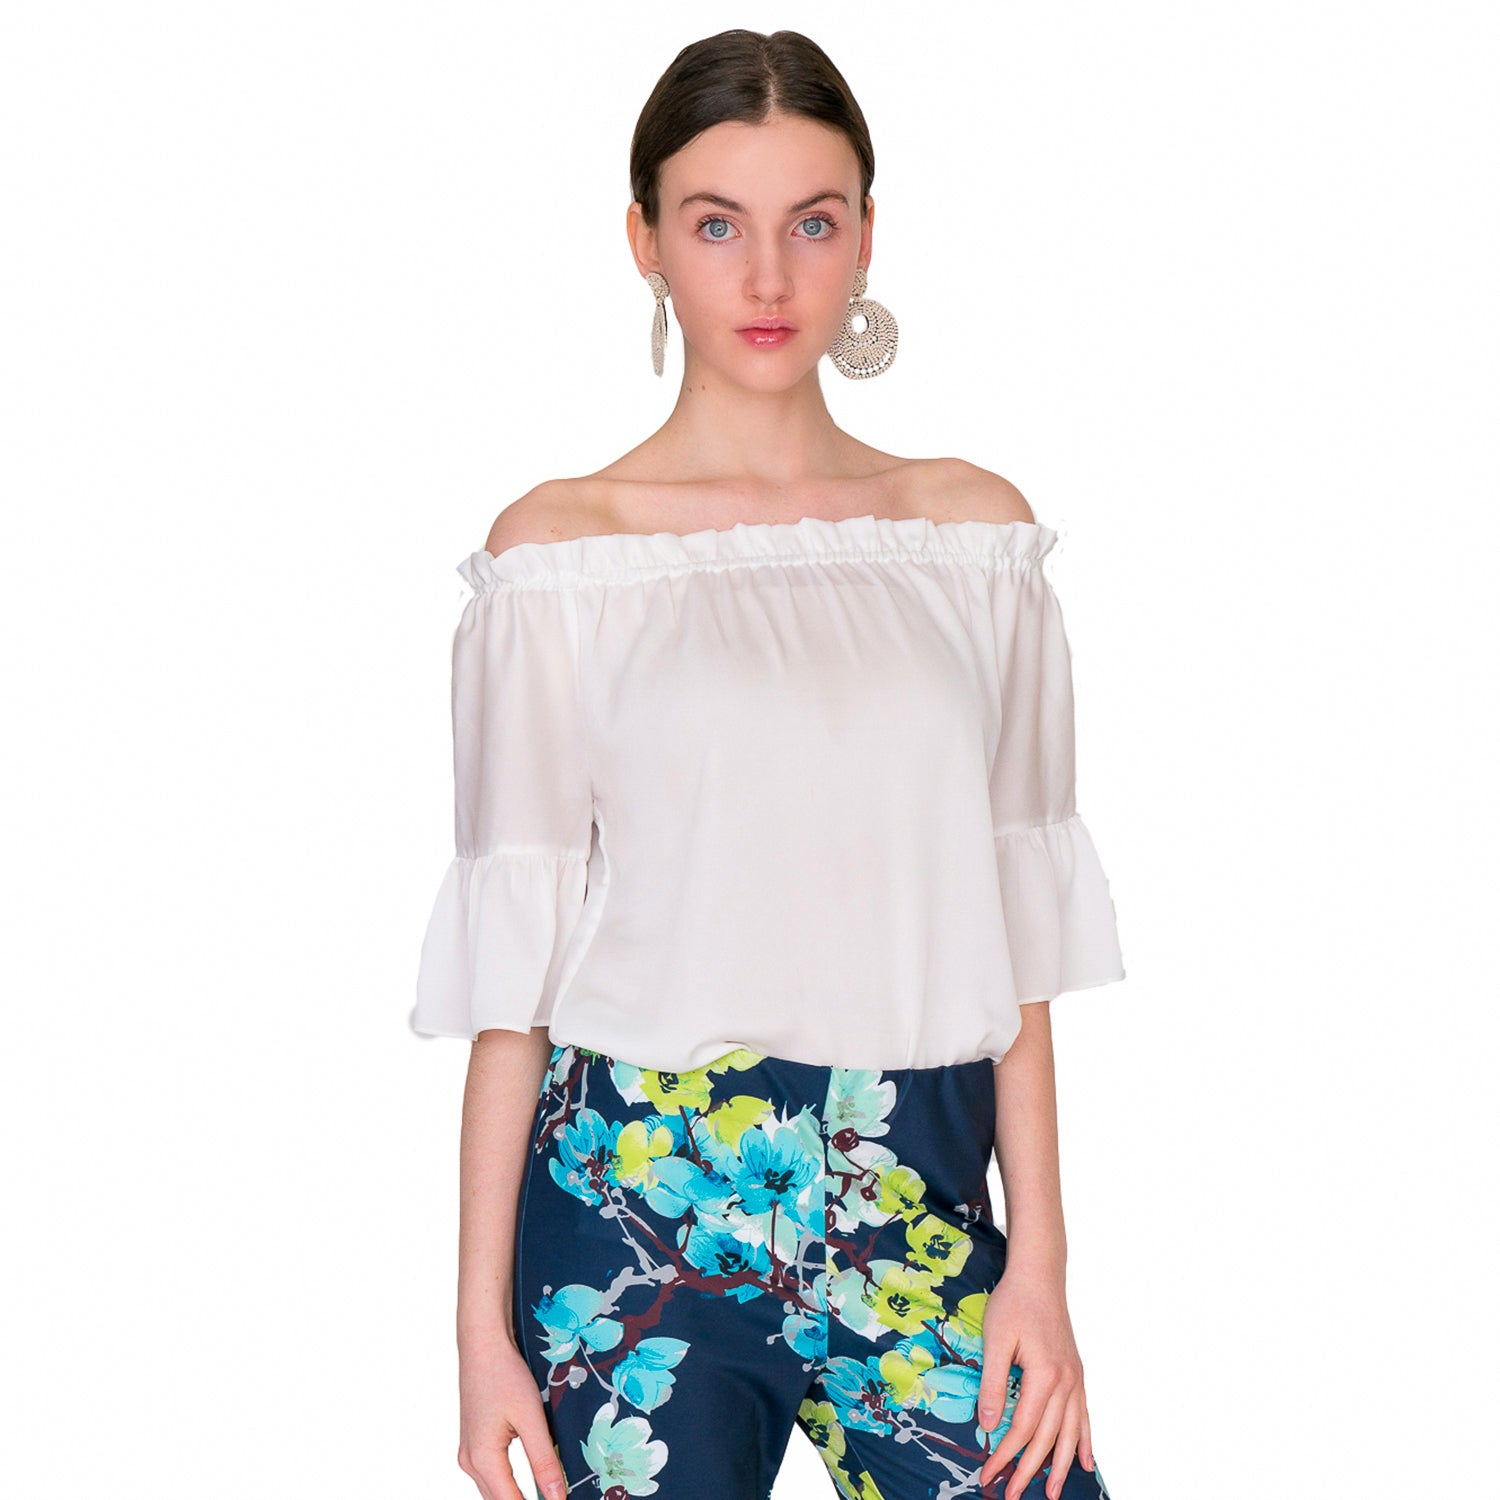 Mae On/Off Shoulder Ruffle Sleeve  Blouse in White - Elizabeth Ackerman New York